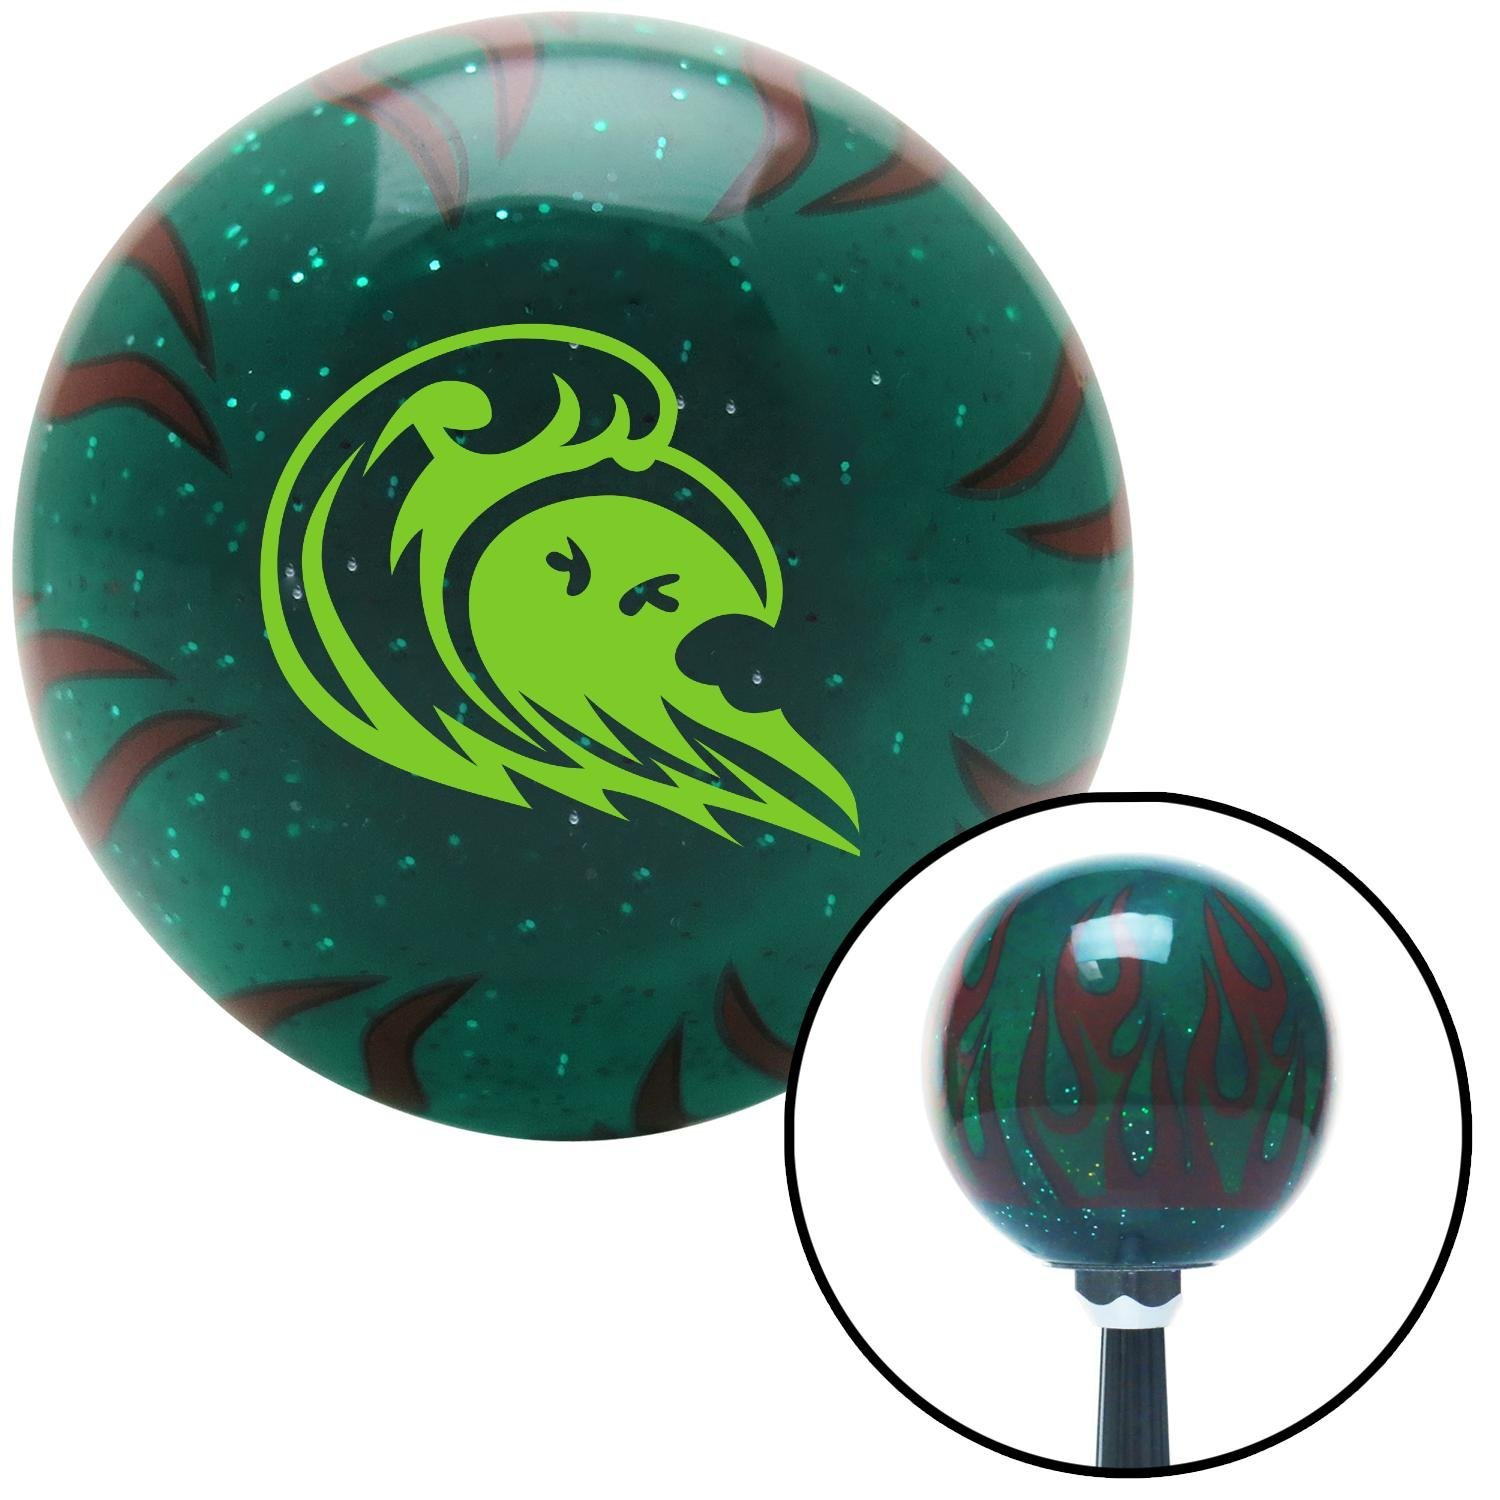 American Shifter 265900 Green Flame Metal Flake Shift Knob with M16 x 1.5 Insert Green Hawaiian Waves #3